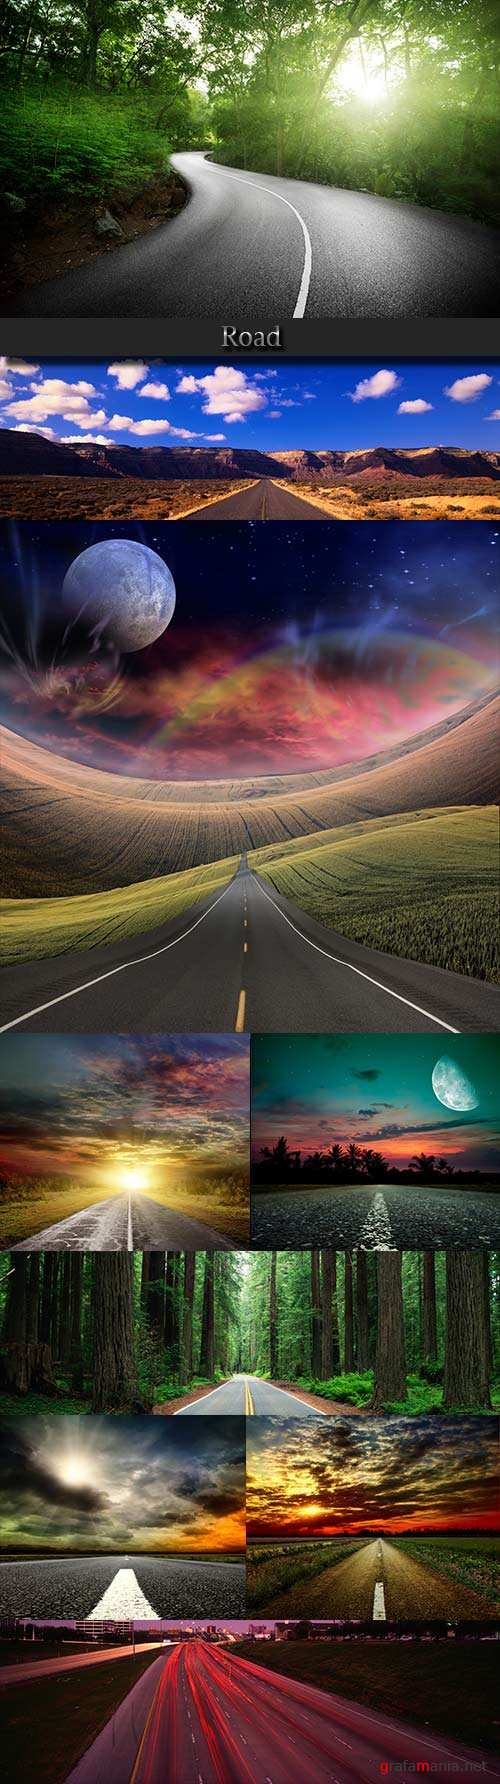 The road raster graphics